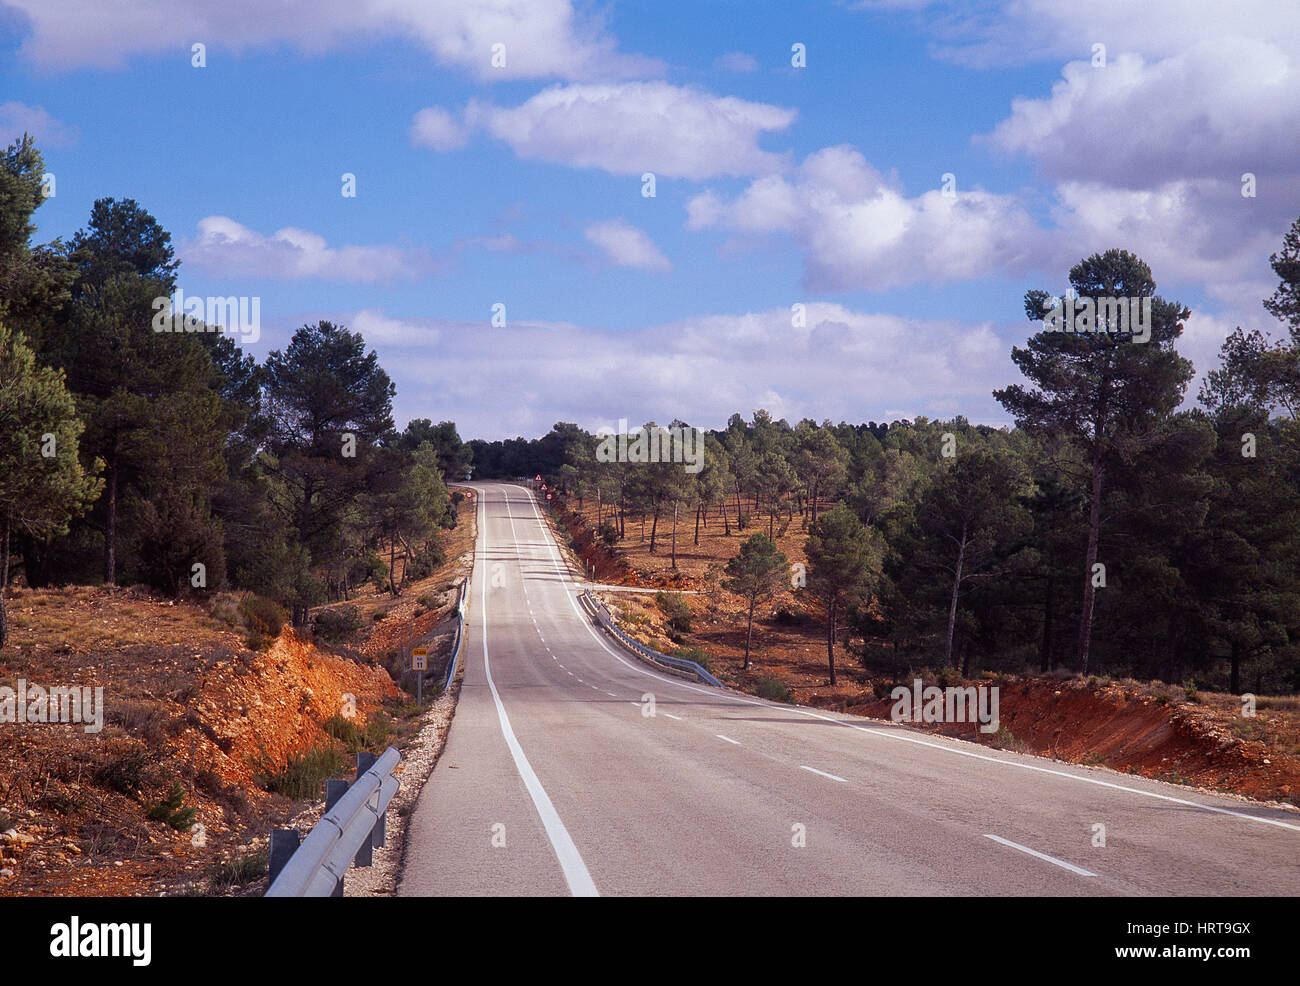 Lonely road. Valencia province, Spain. - Stock Image